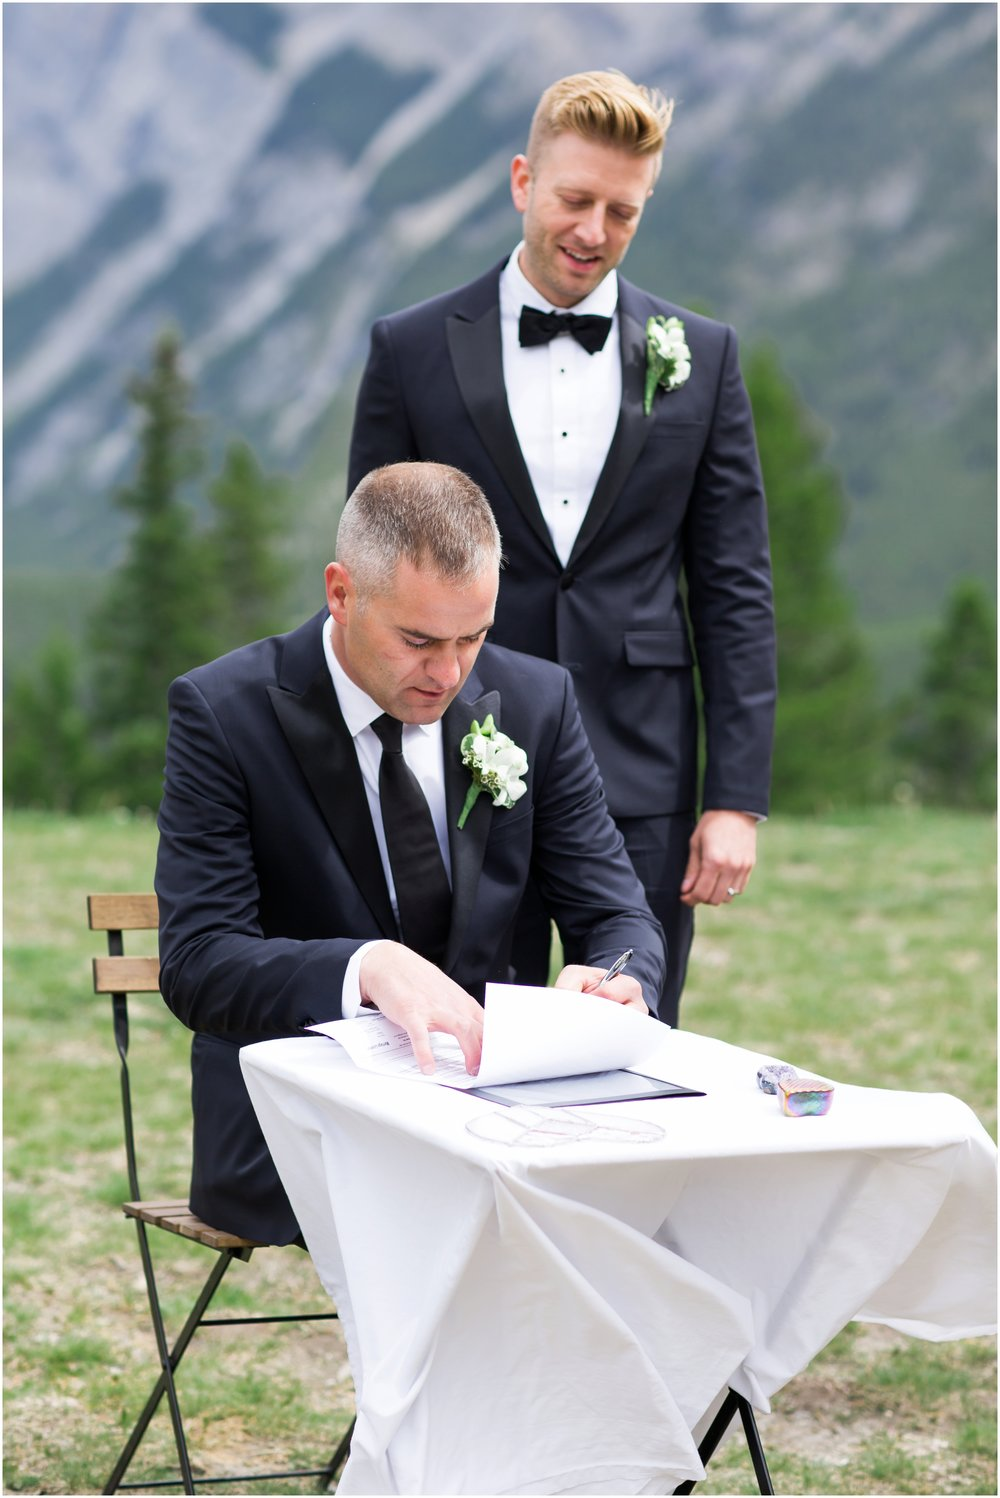 Banff Calgary Wedding - (Selena Phillips-Boyle)_0010.jpg